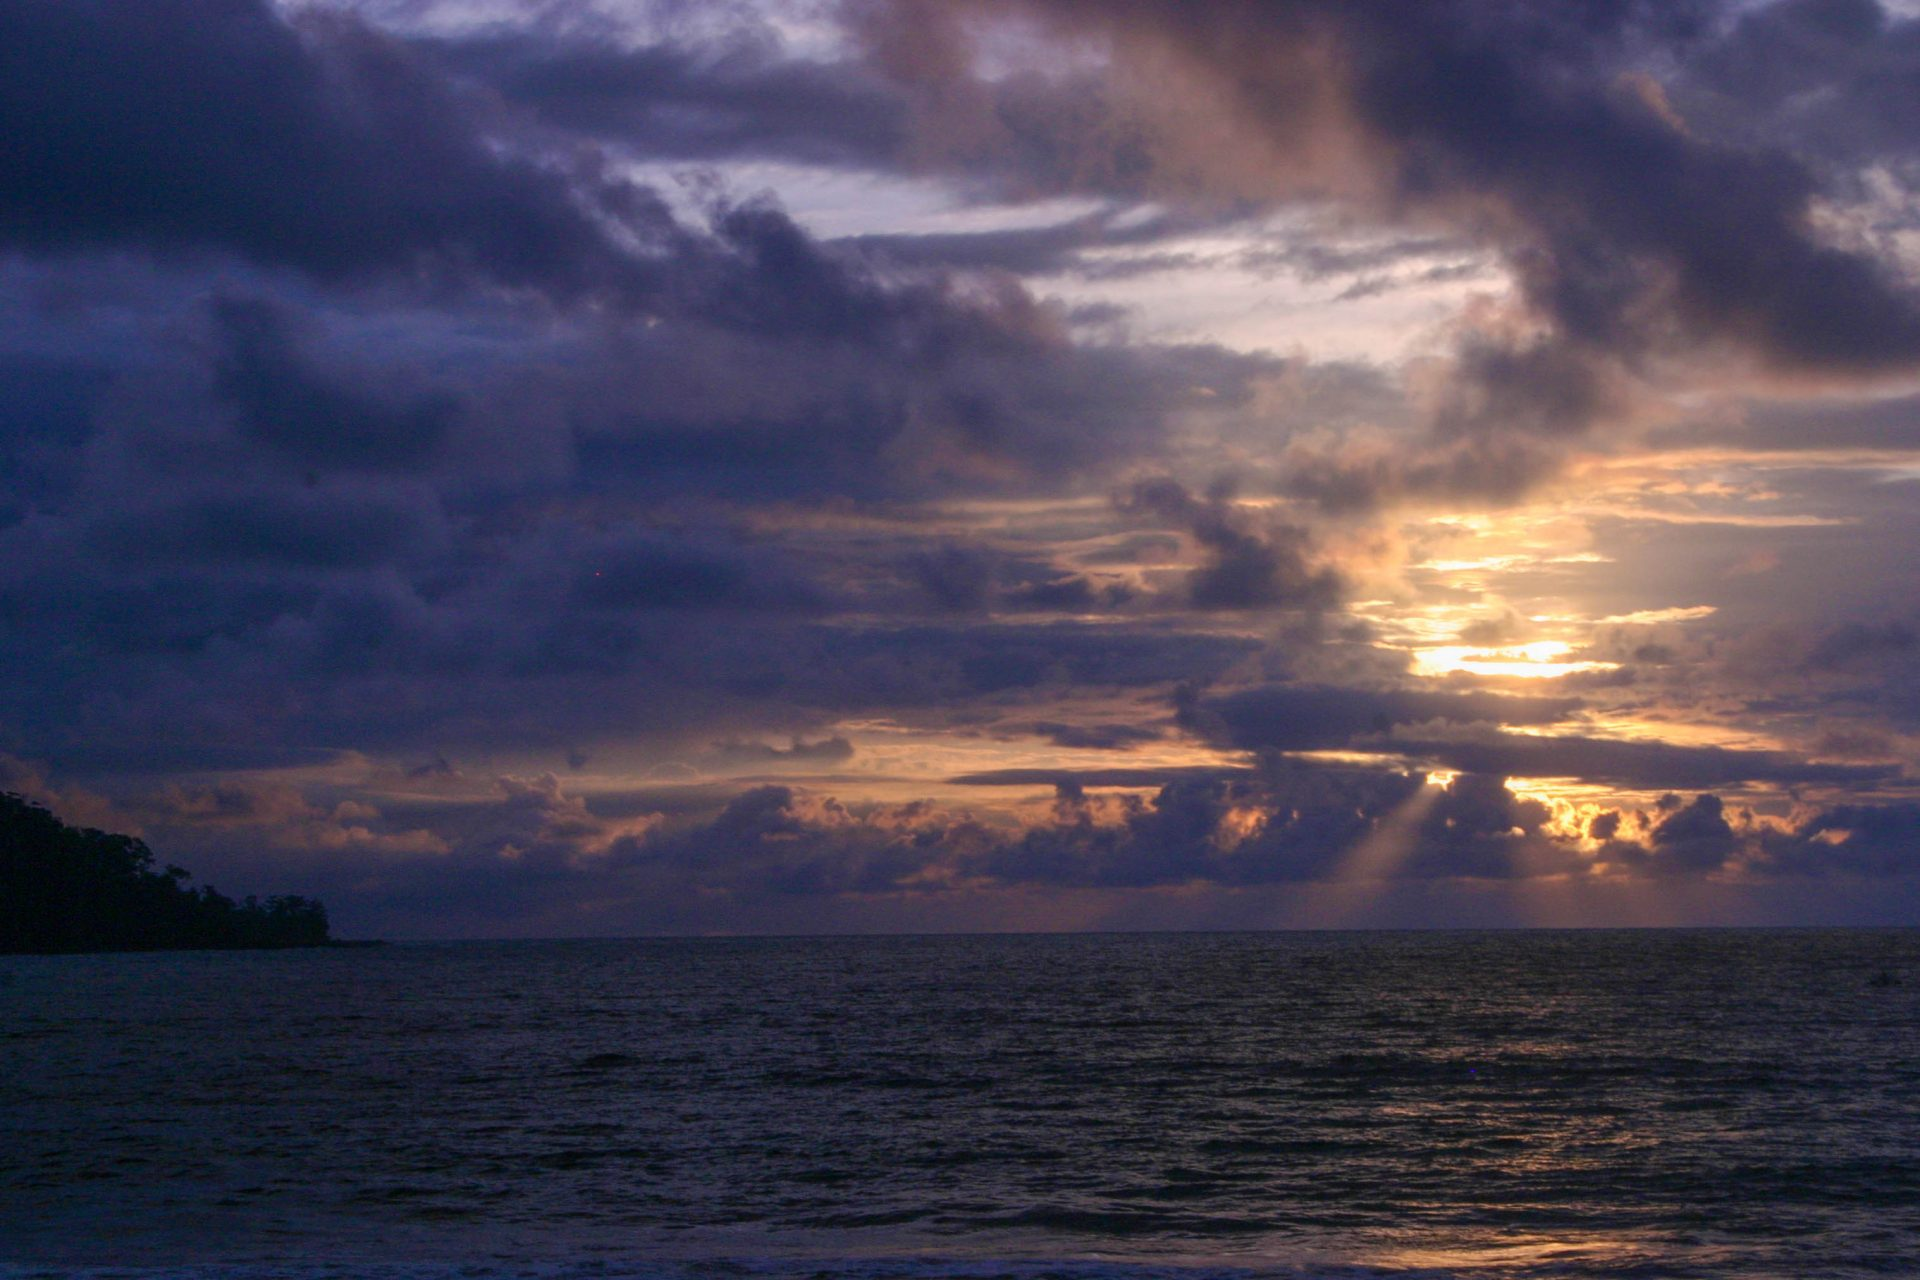 A beautiful sunset is reflected in the waters off the coast of Costa Rica - finding paradise in the osa peninsula